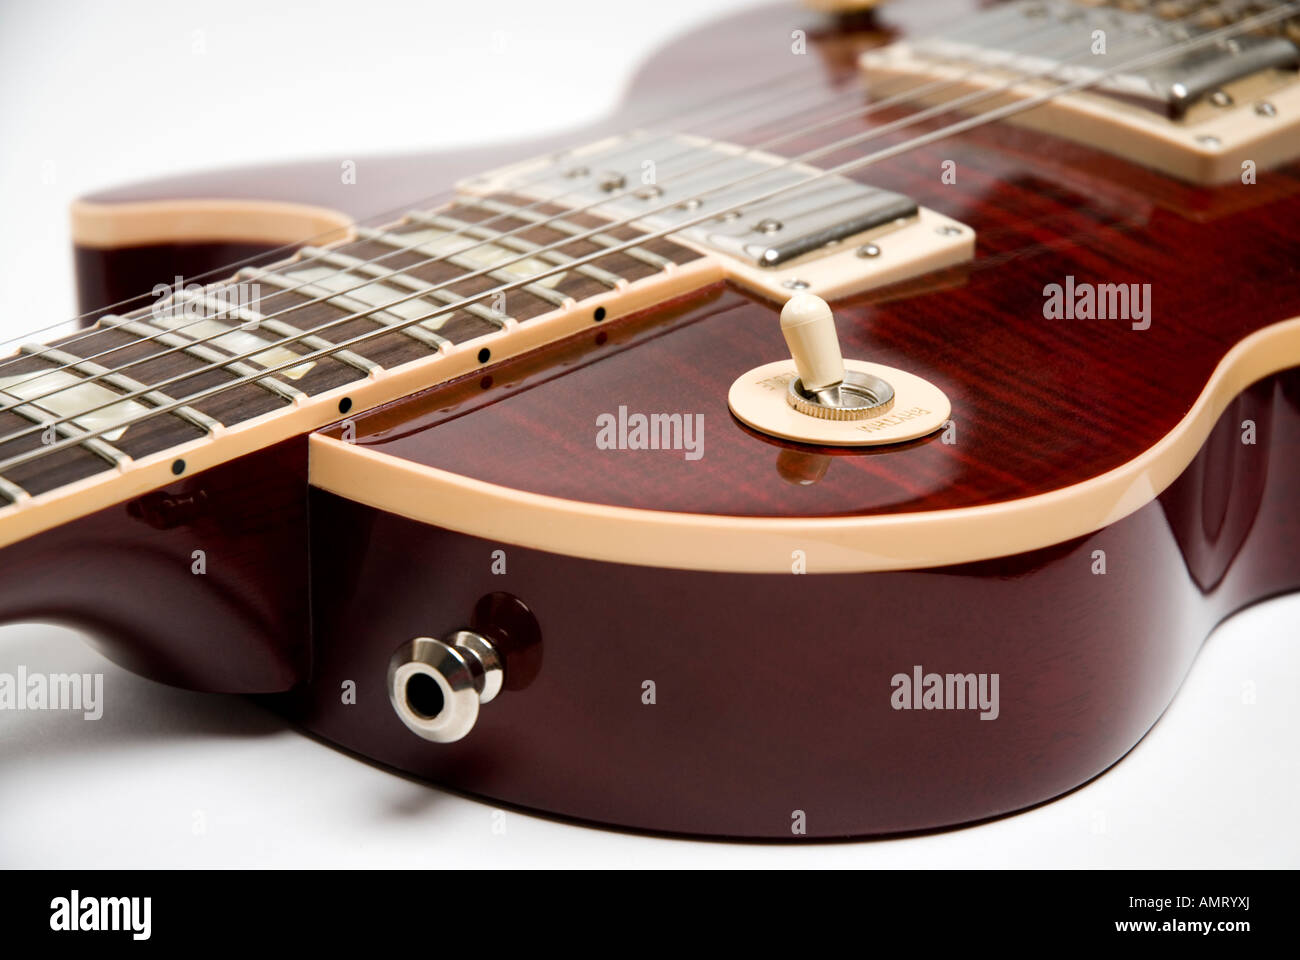 Gibson Les Paul Stock Photos Images Alamy 1958 Wiring Diagram Close Up Of Wine Red Guitar Showing Humbucker Pickups Frets Strings